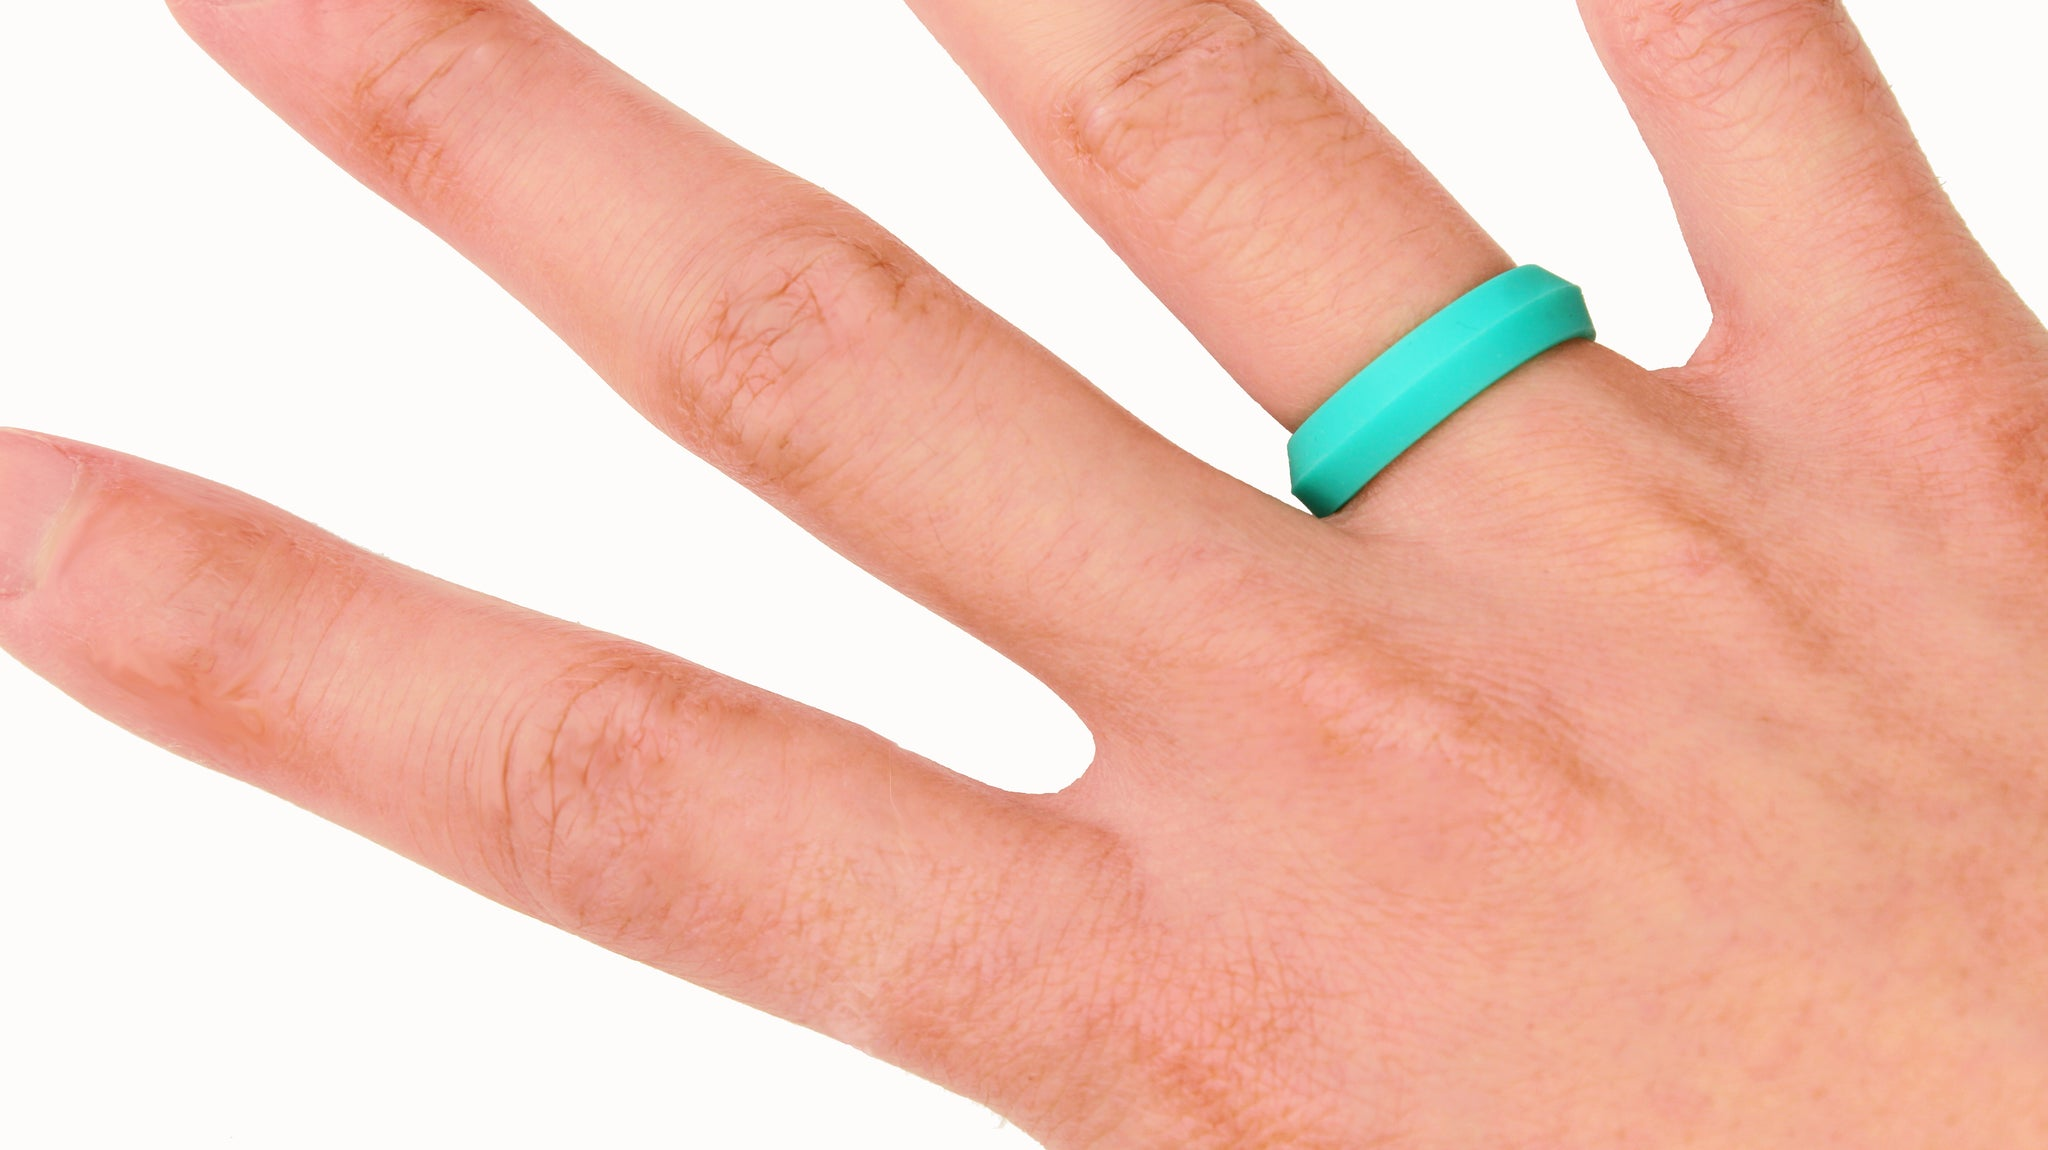 Knot Theory Elegant Teal Turquoise Silicone Wedding Rings for Woman 5mm Bandwidth